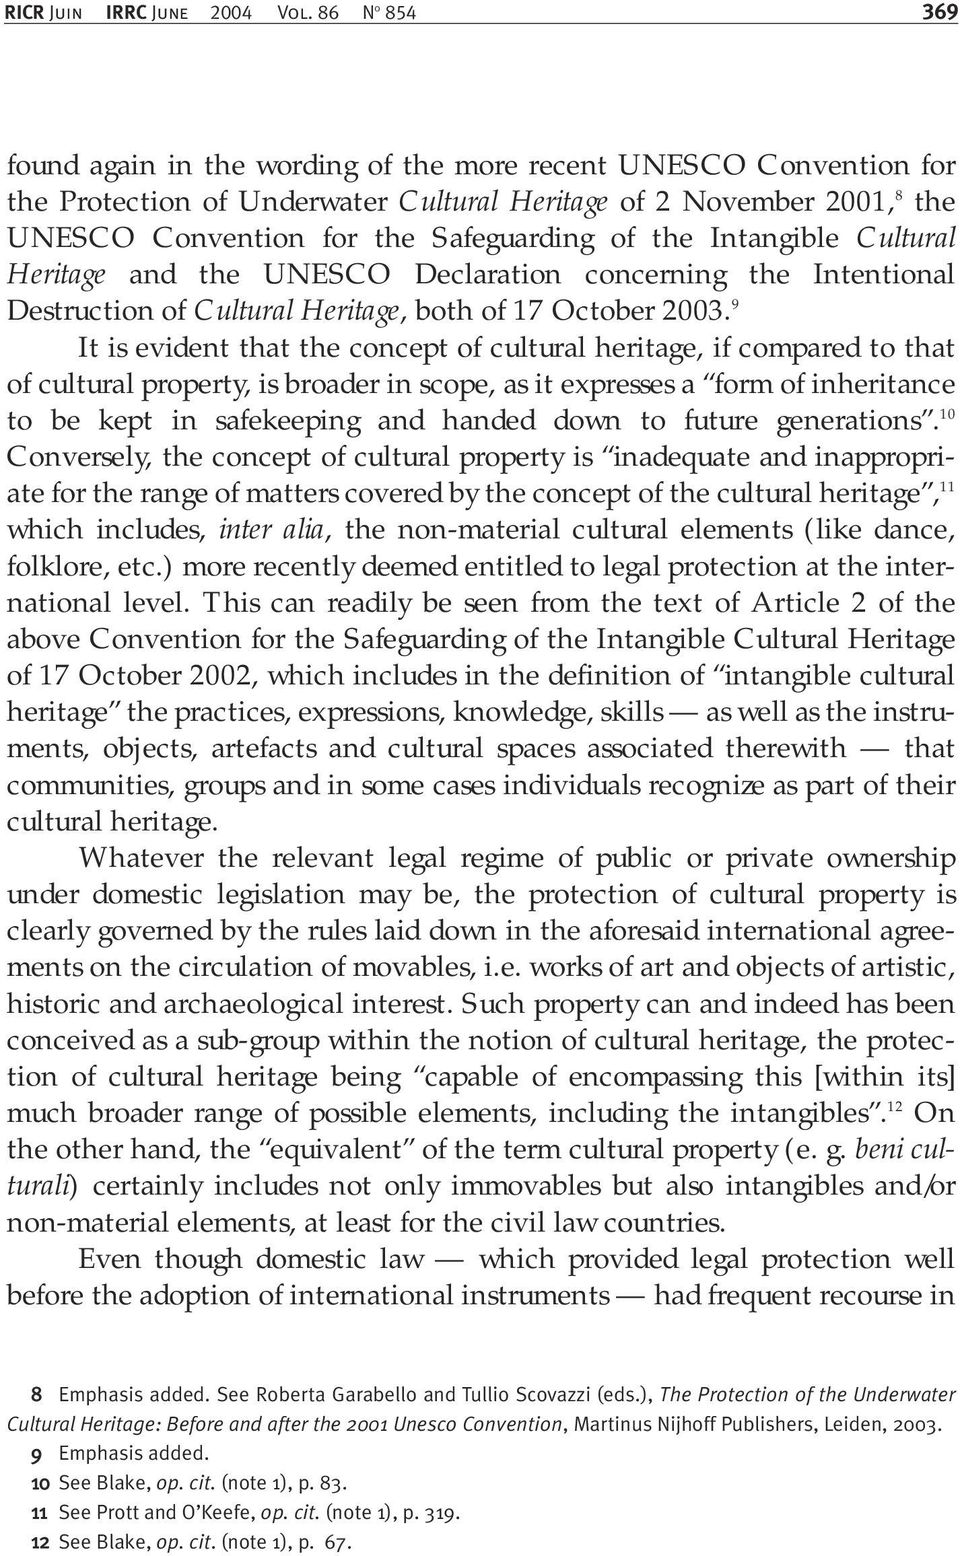 the Intangible Cultural Heritage and the UNESCO Declaration concerning the Intentional Destruction of Cultural Heritage, both of 17 October 2003.